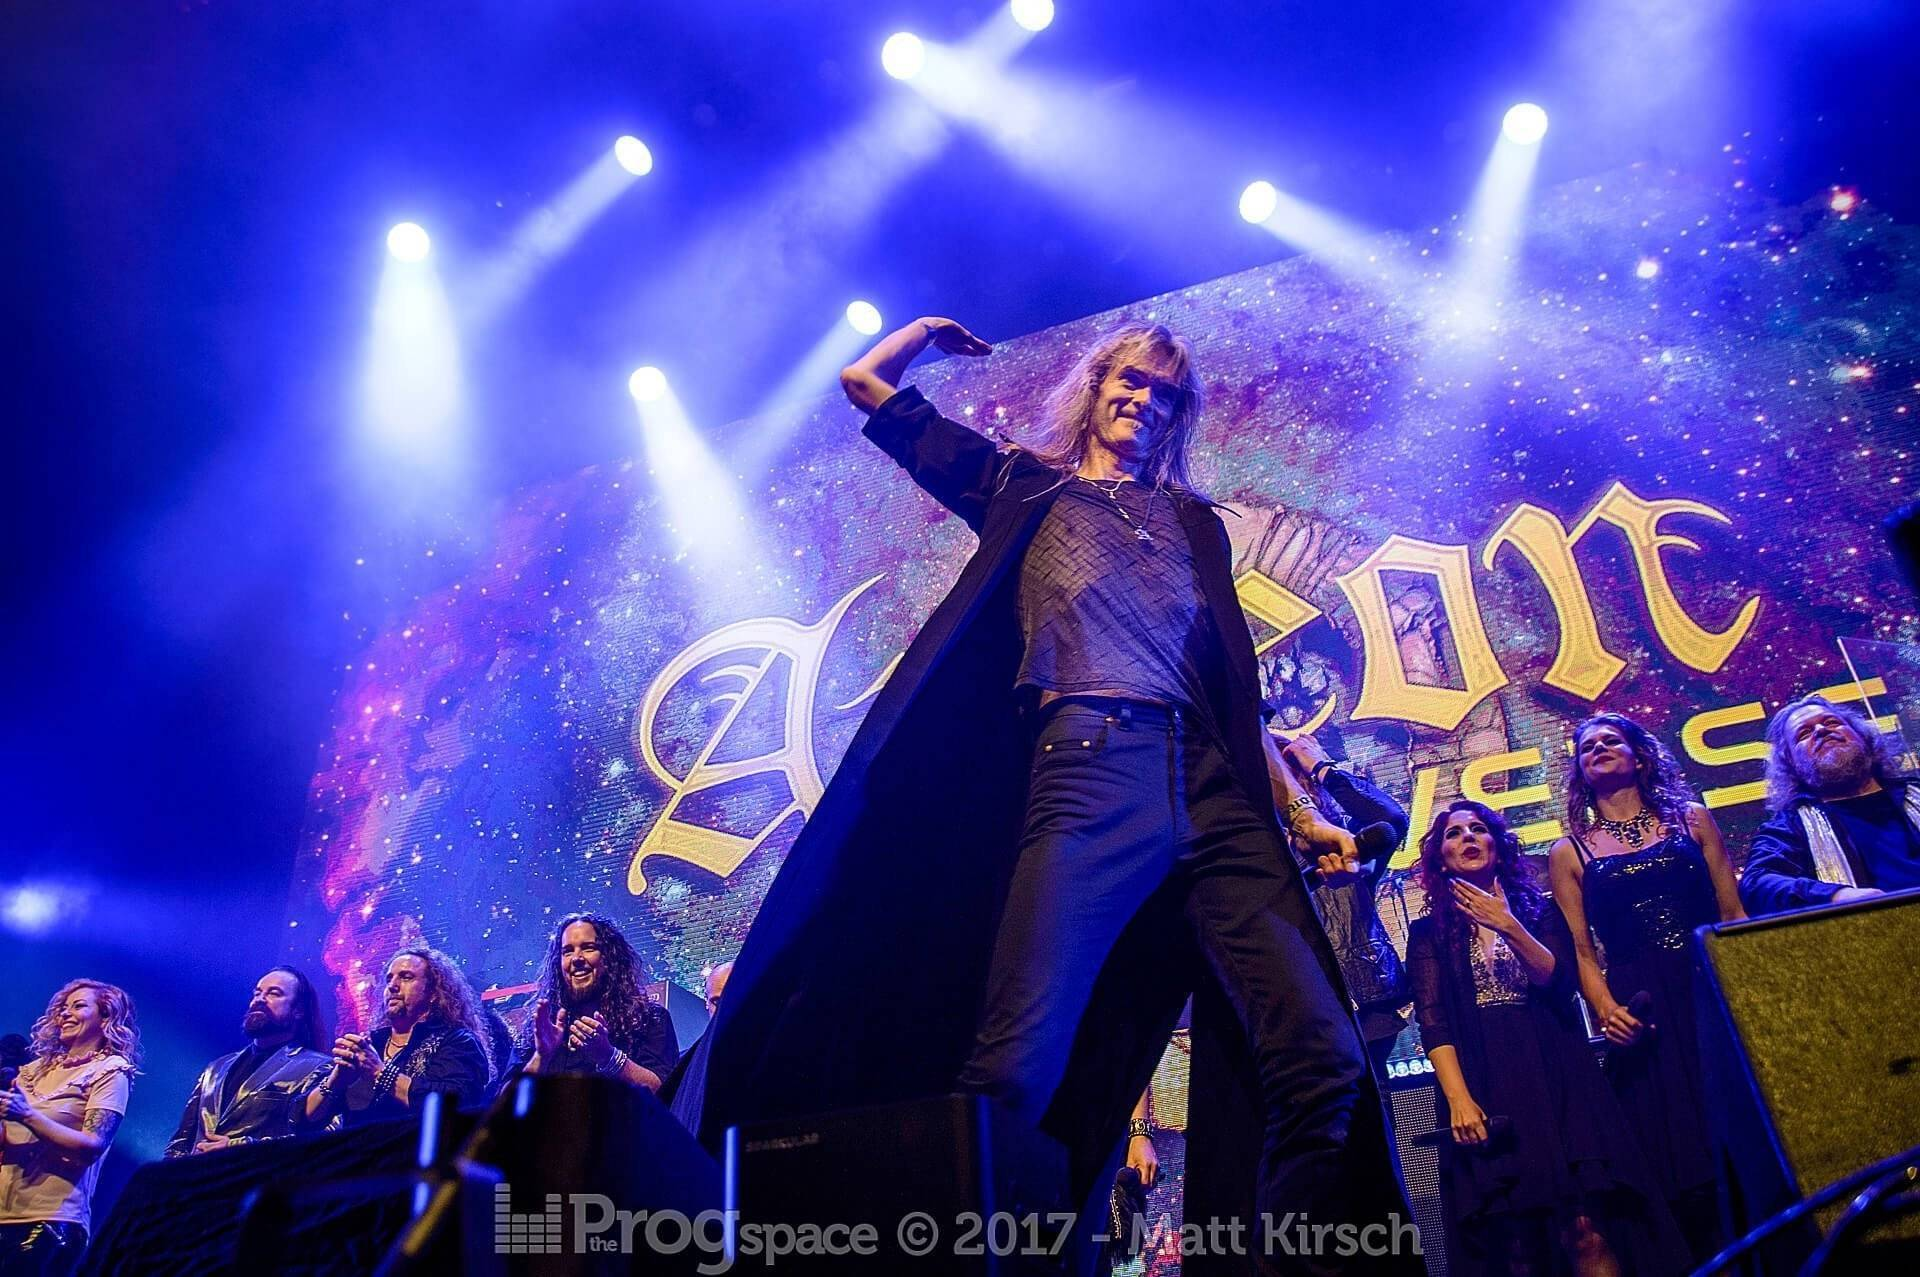 Ayreon Universe, live in Tilburg 15. September, 2017